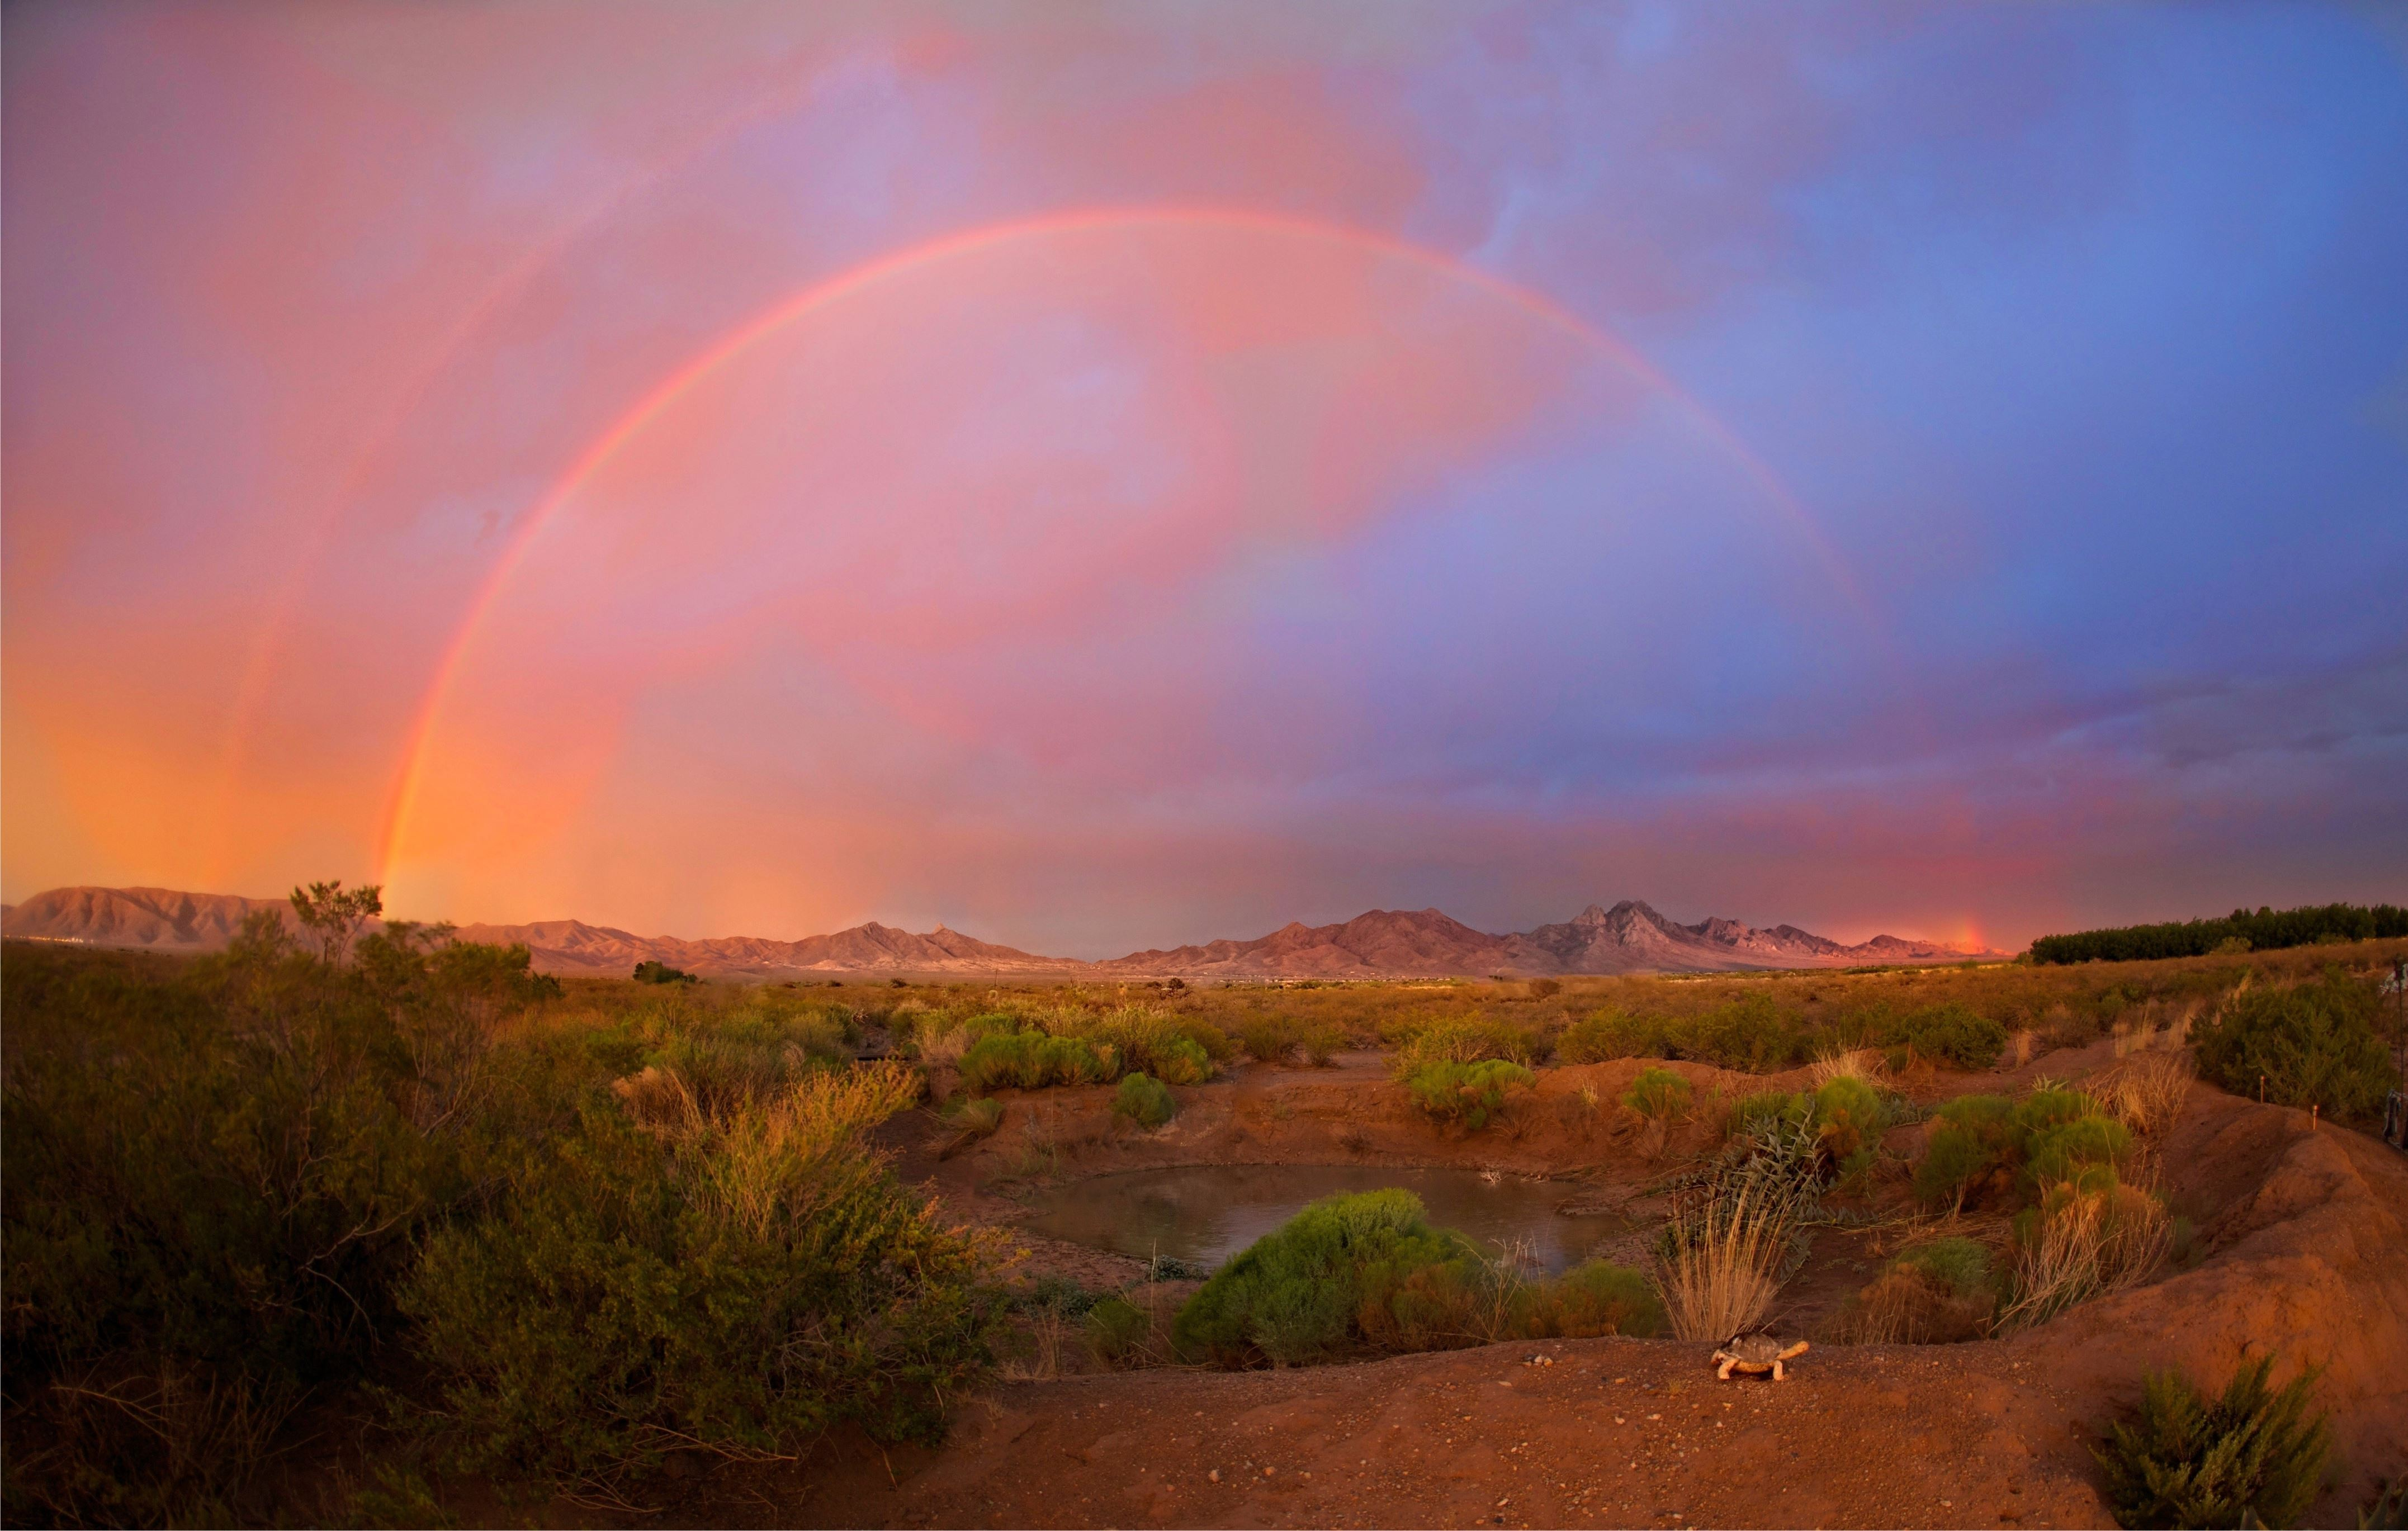 Slide 2 of 23: This rainbow and clouds were captured at Las Cruces, New Mexico.